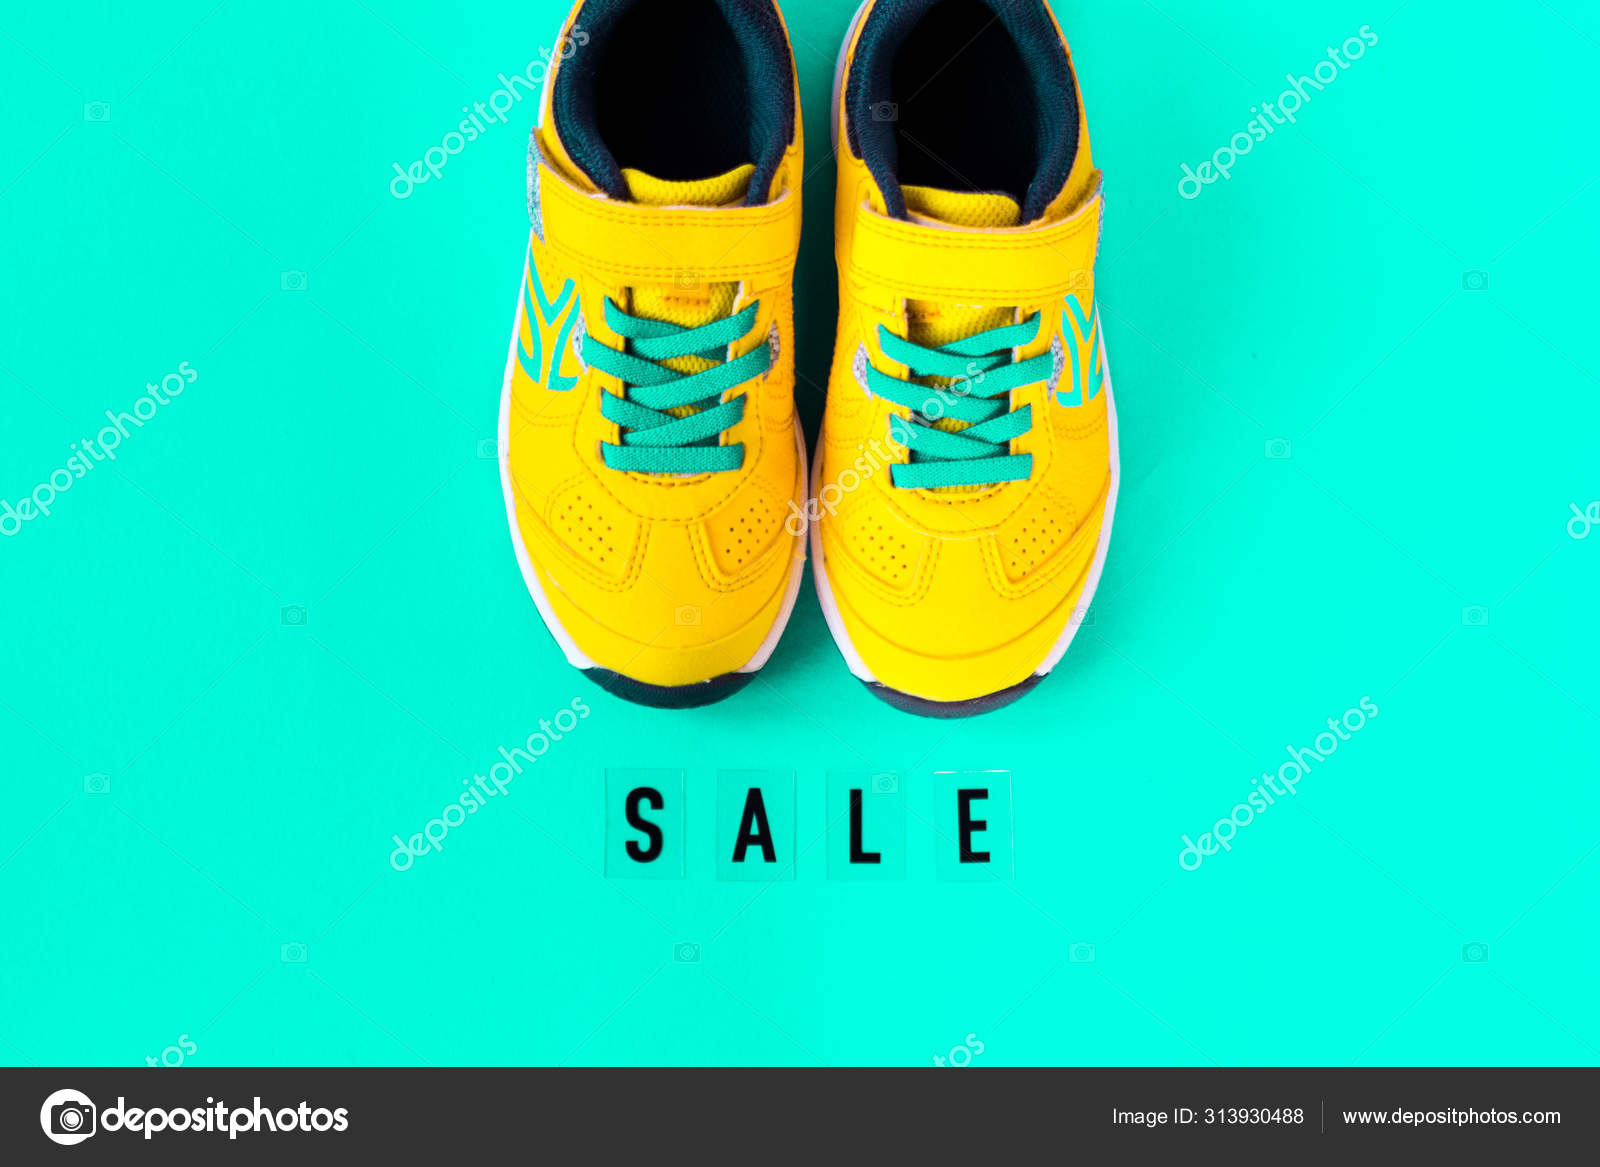 Pair of yellow shoes on blue background